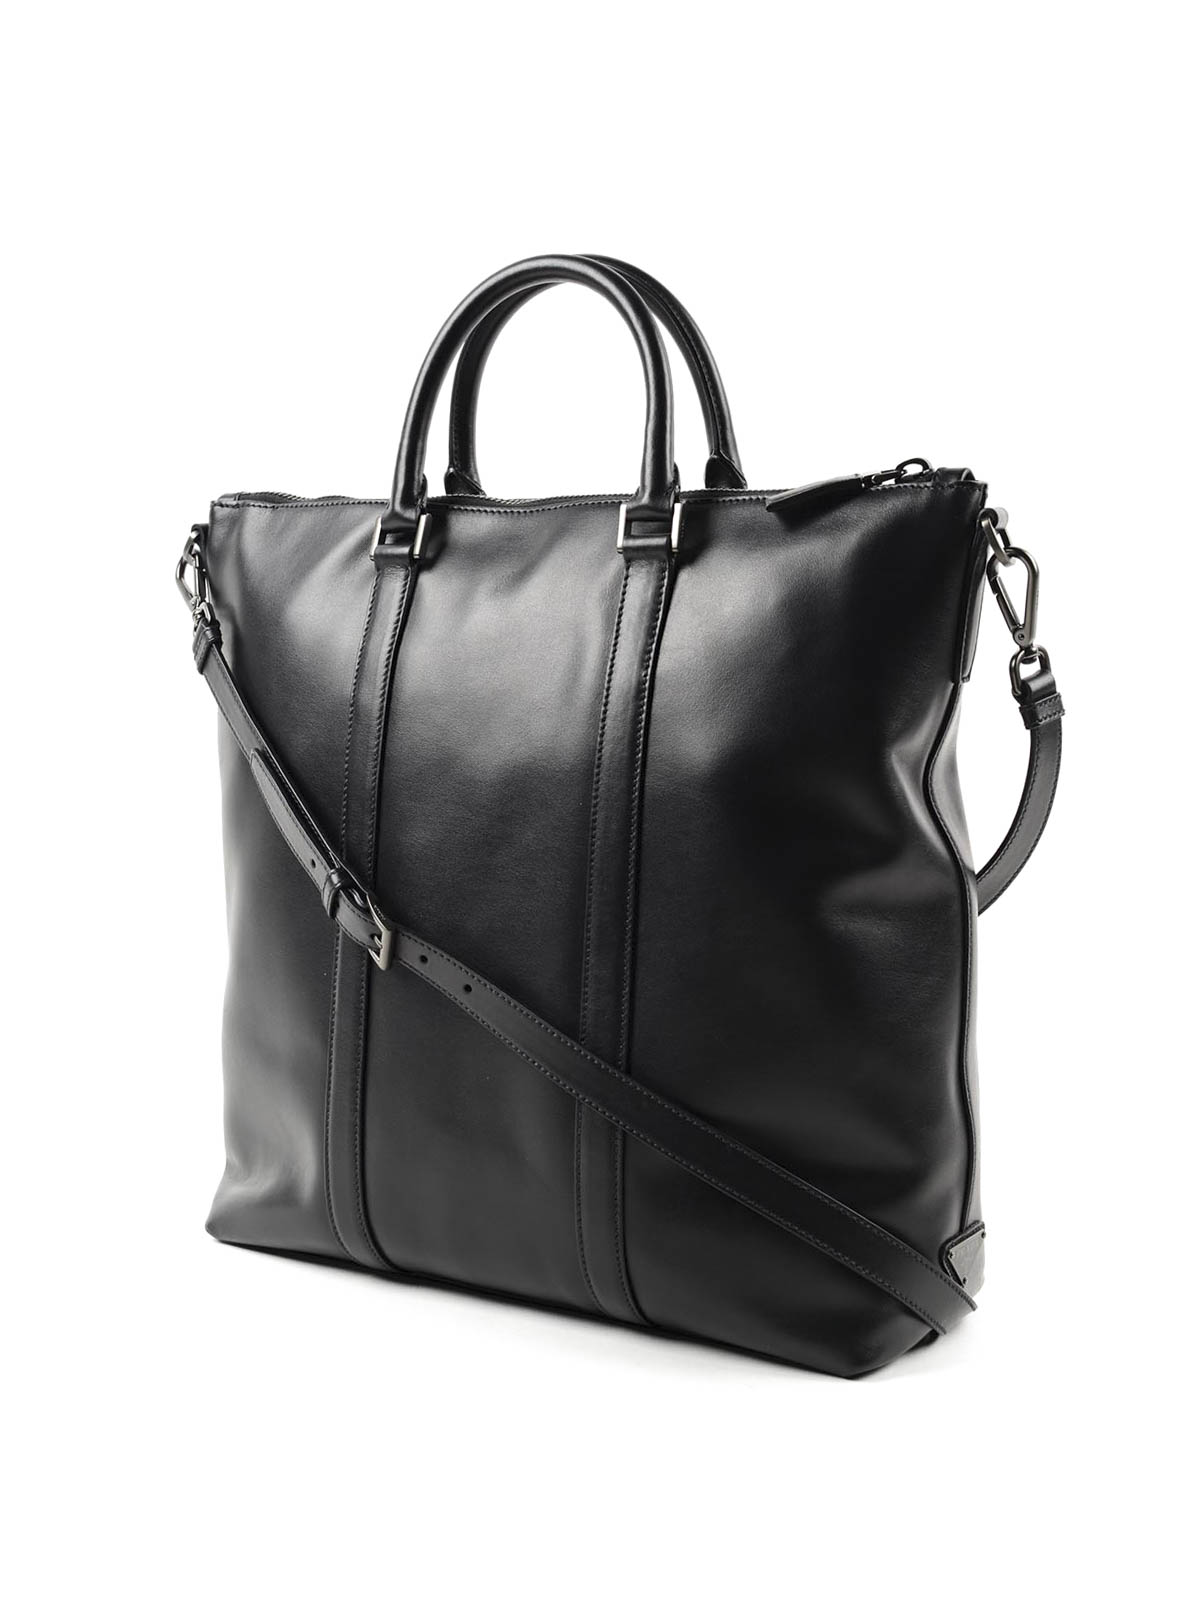 Soft leather travel bag by Prada - Luggage \u0026amp; Travel bags | iKRIX